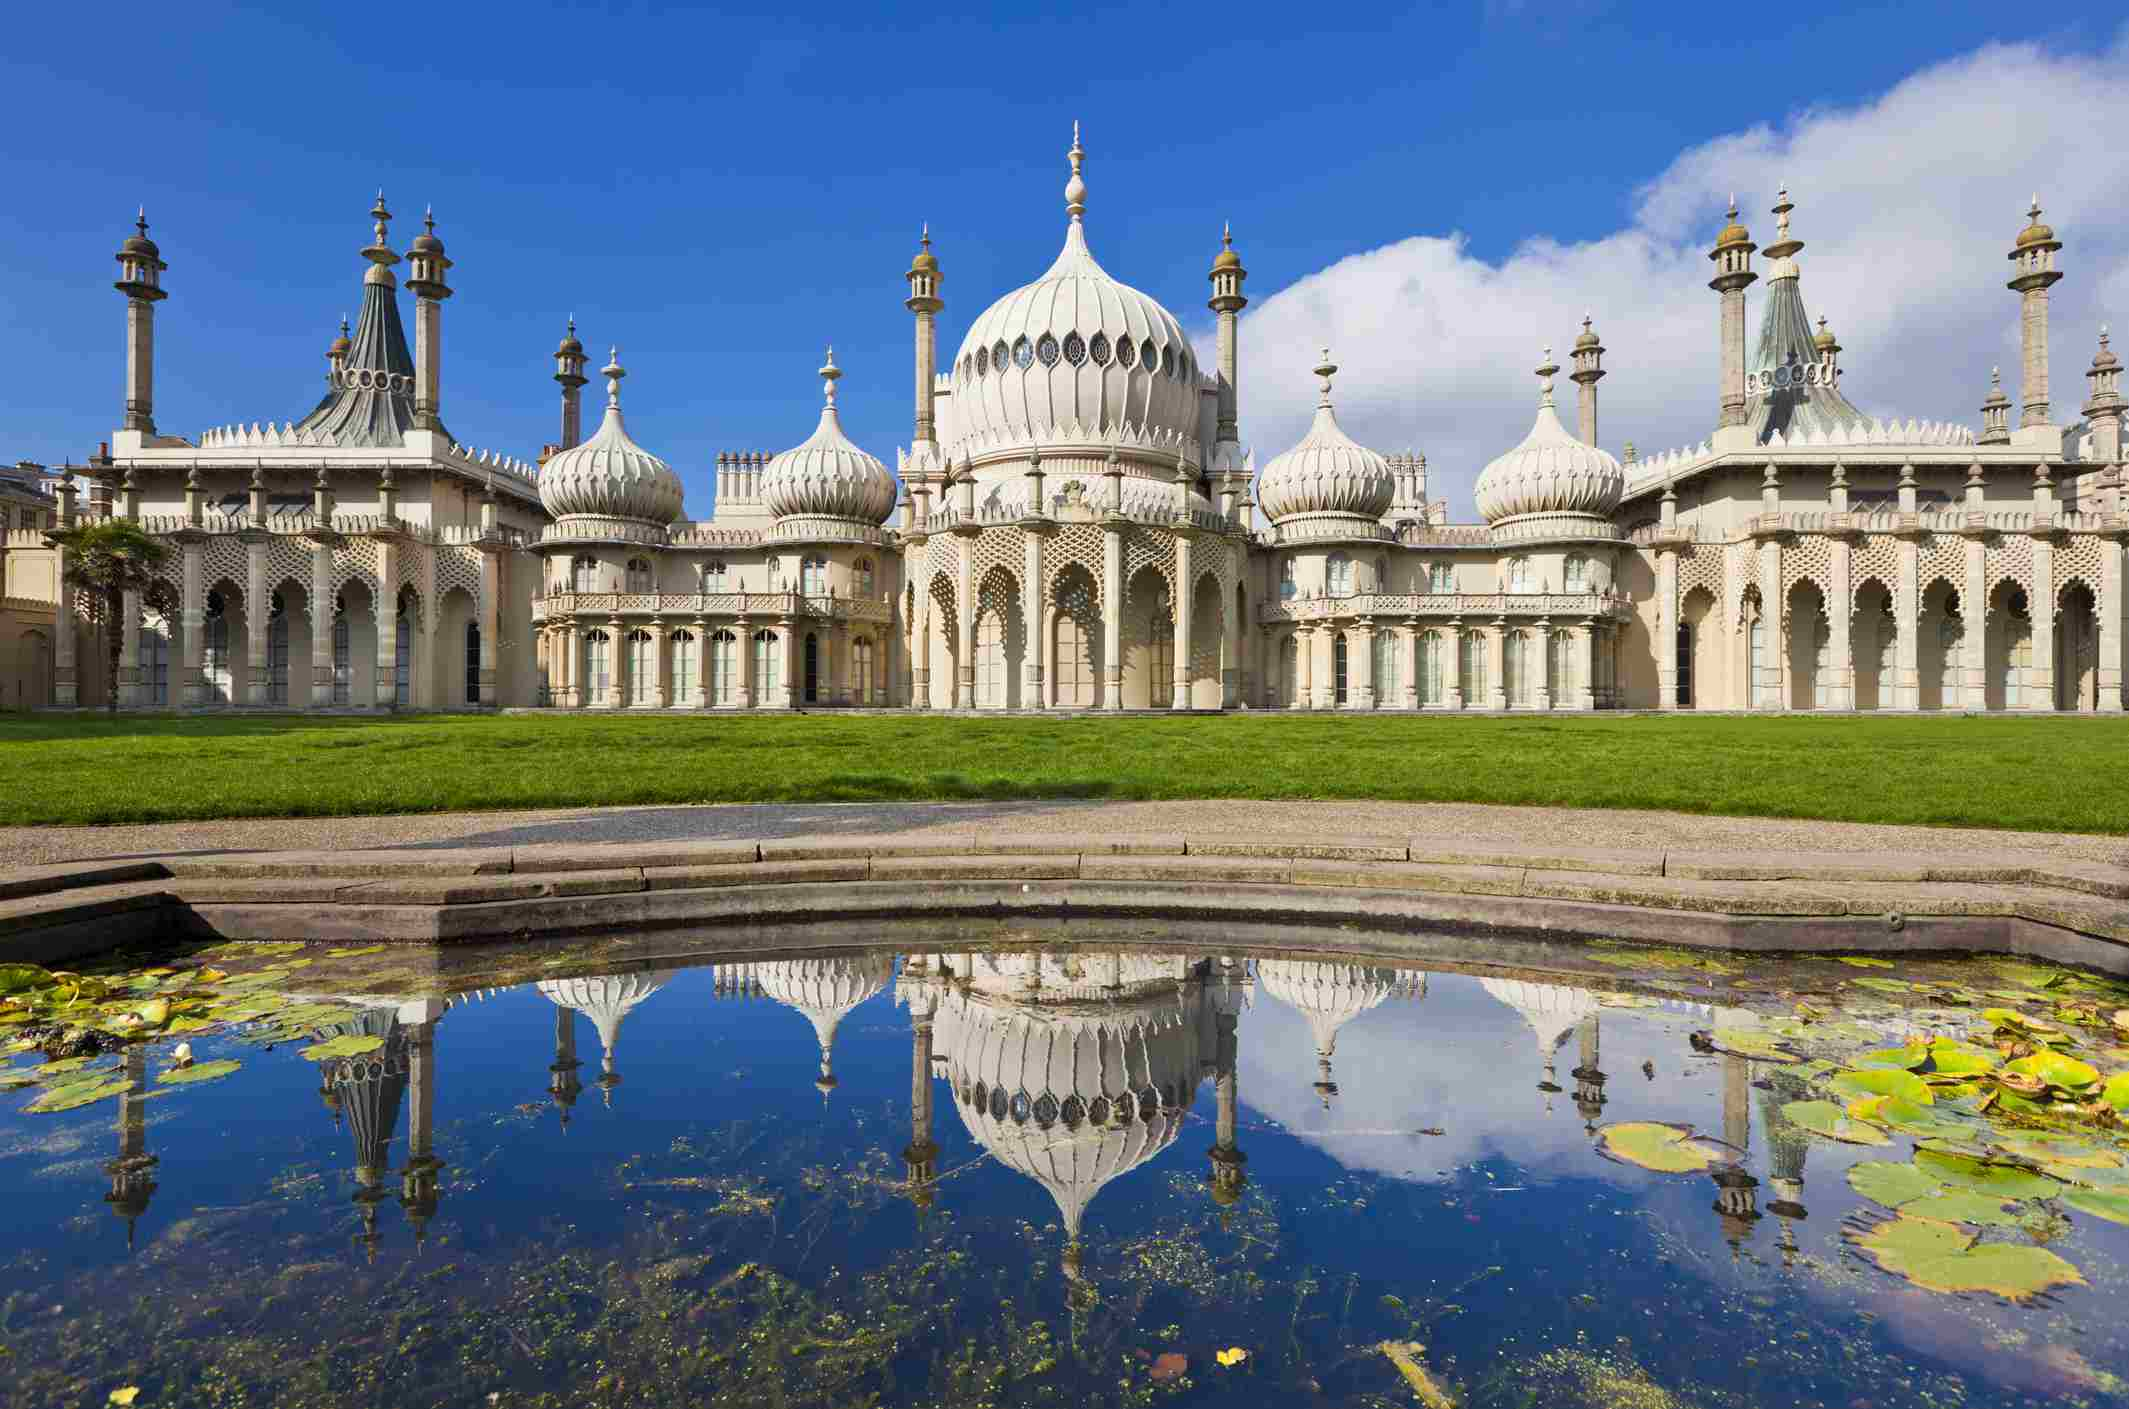 The Royal Pavilion Brighton with enough domes and towers to satisfy cravings for the most exotic wedding or civil partnership.